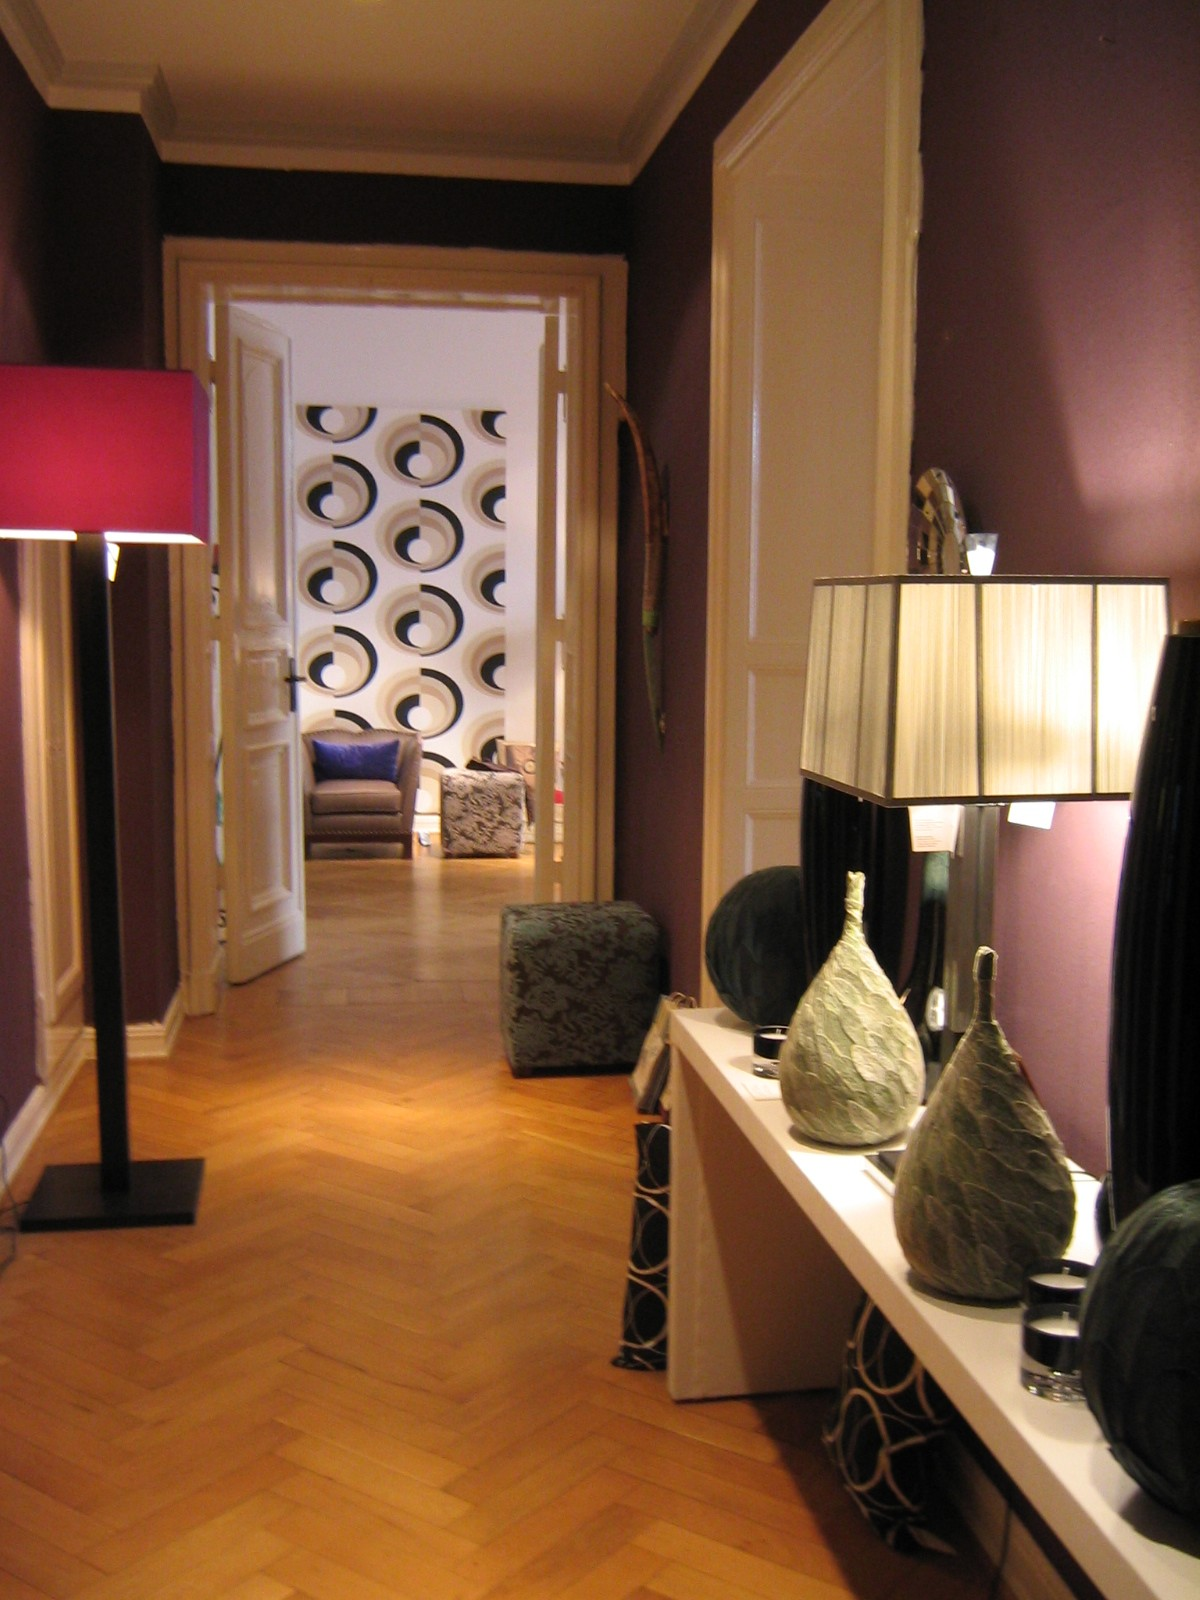 Mommsenstr Showroom 001.JPG